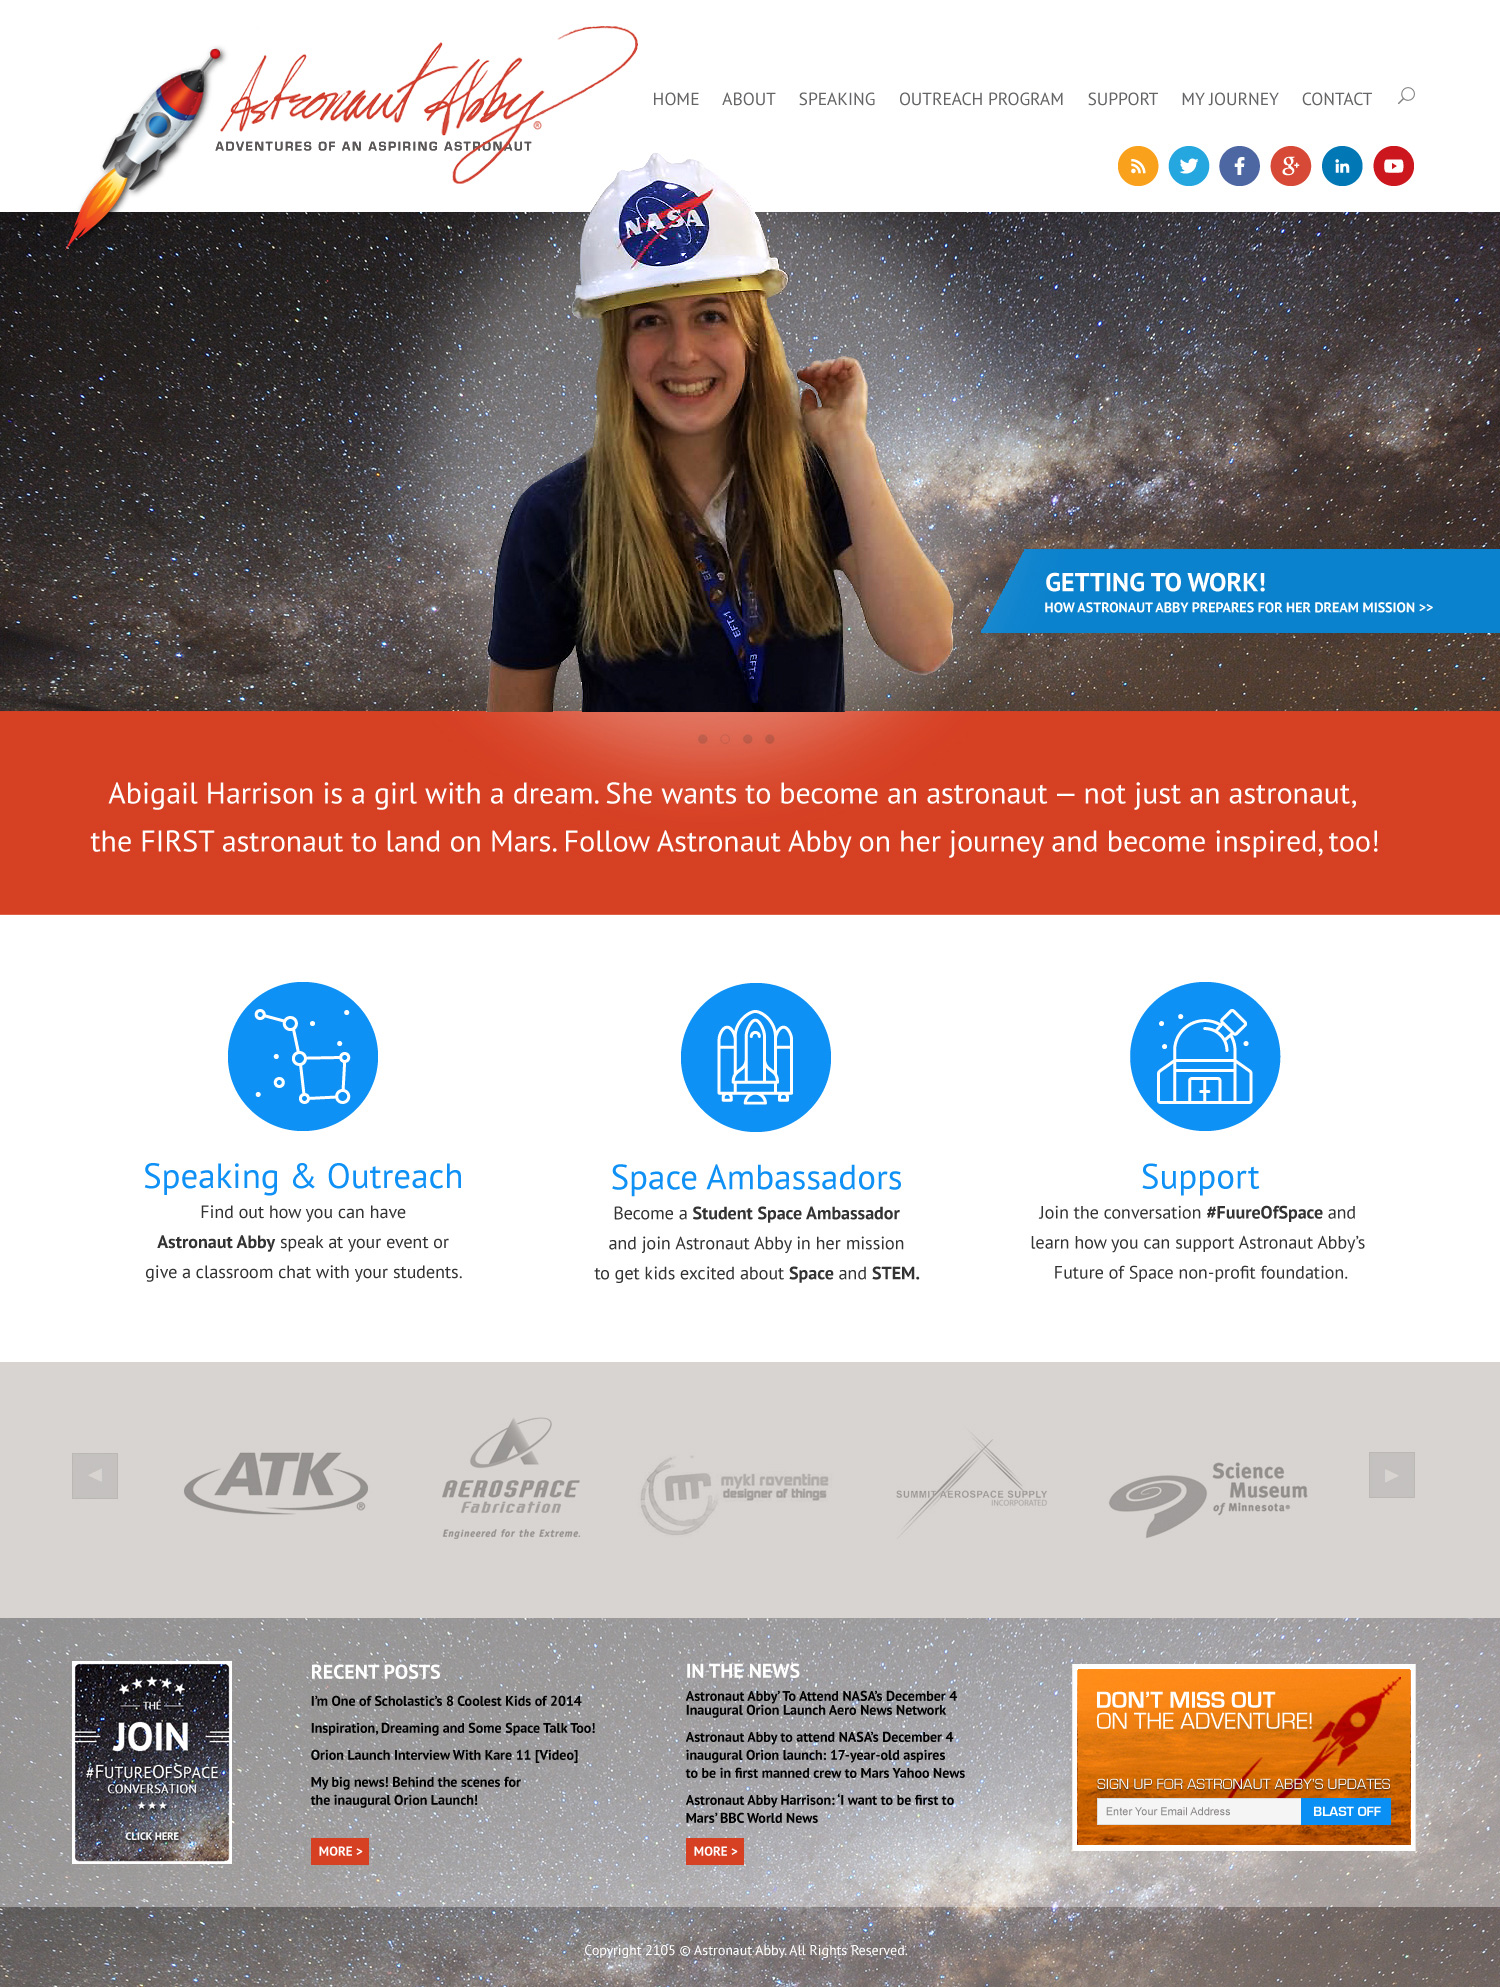 Astronaut Abby New Website Home Page Design